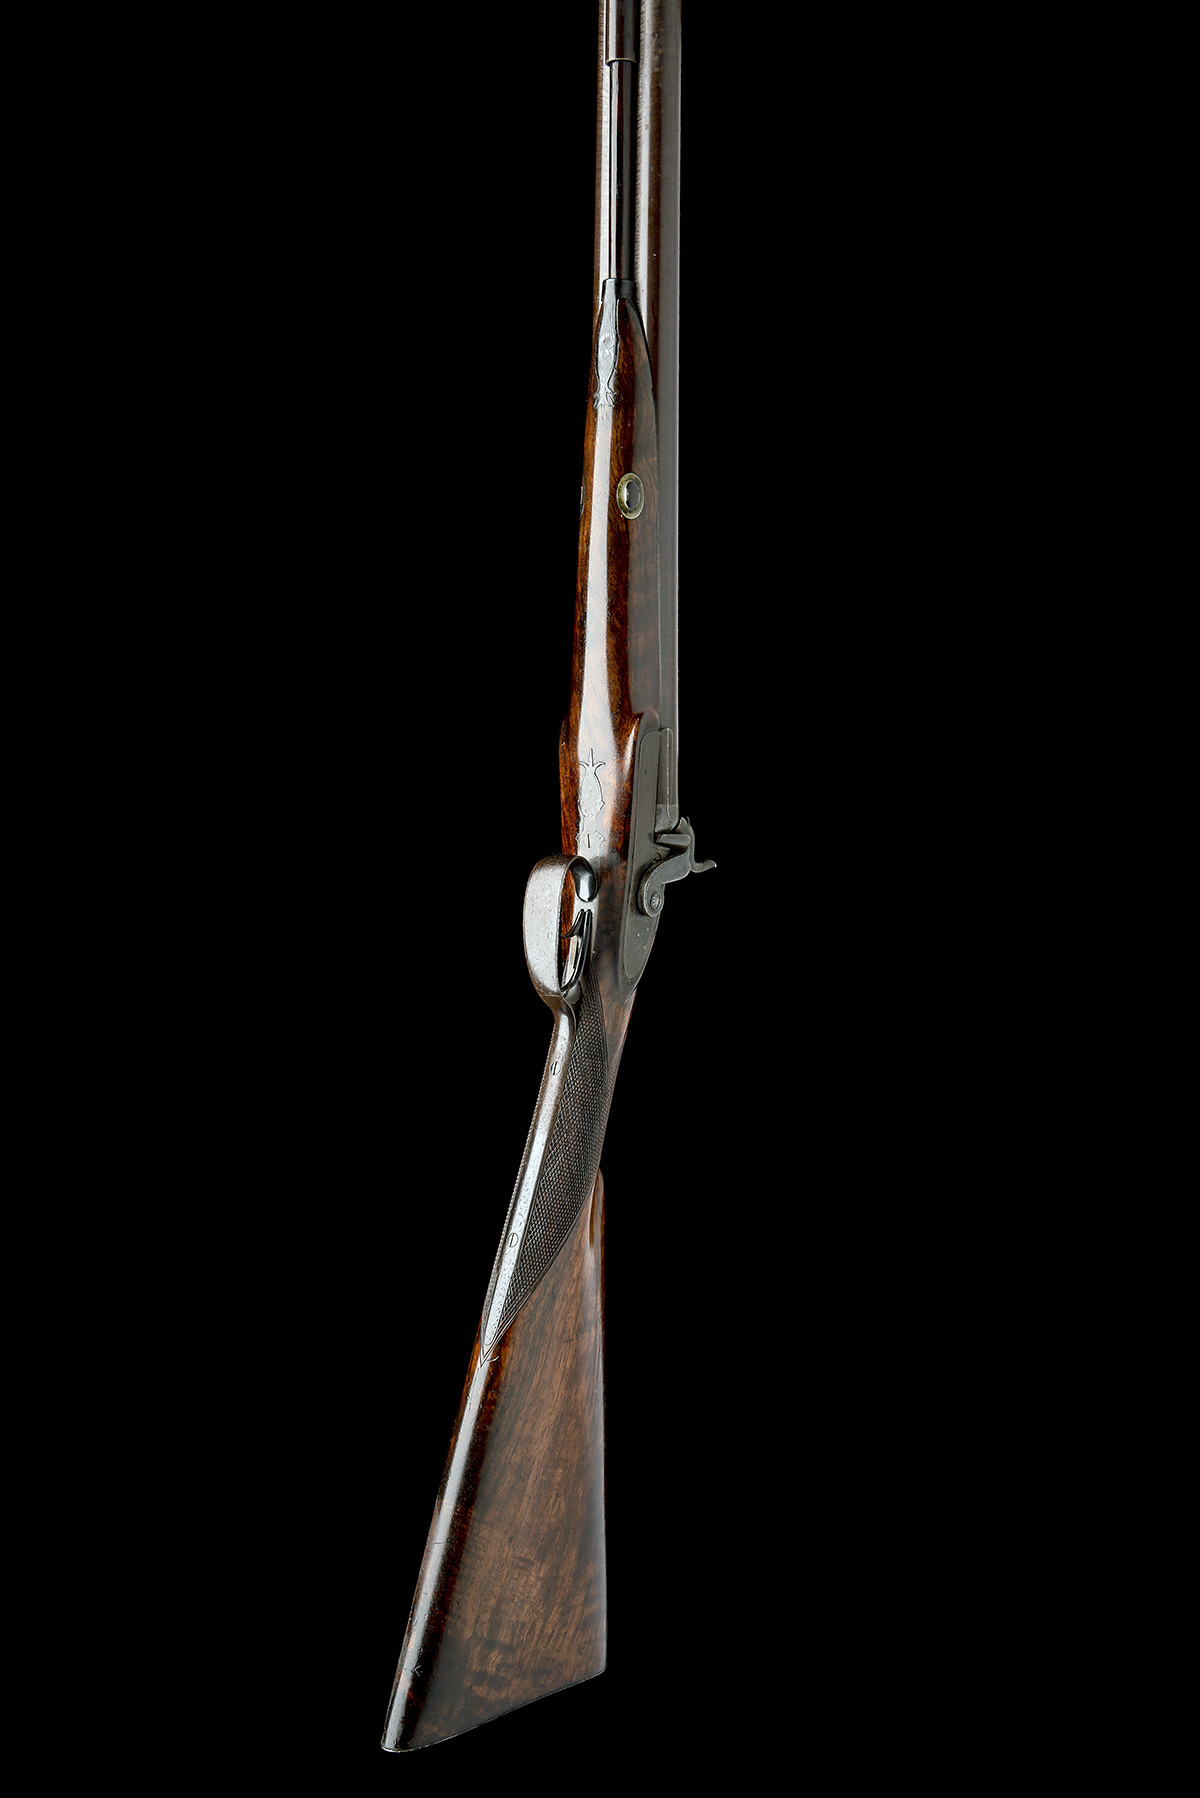 T.K. BAKER, LONDON A 10-BORE PERCUSSION DOUBLE-BARRELLED SPORTING-GUN, no visible serial number, - Image 5 of 8